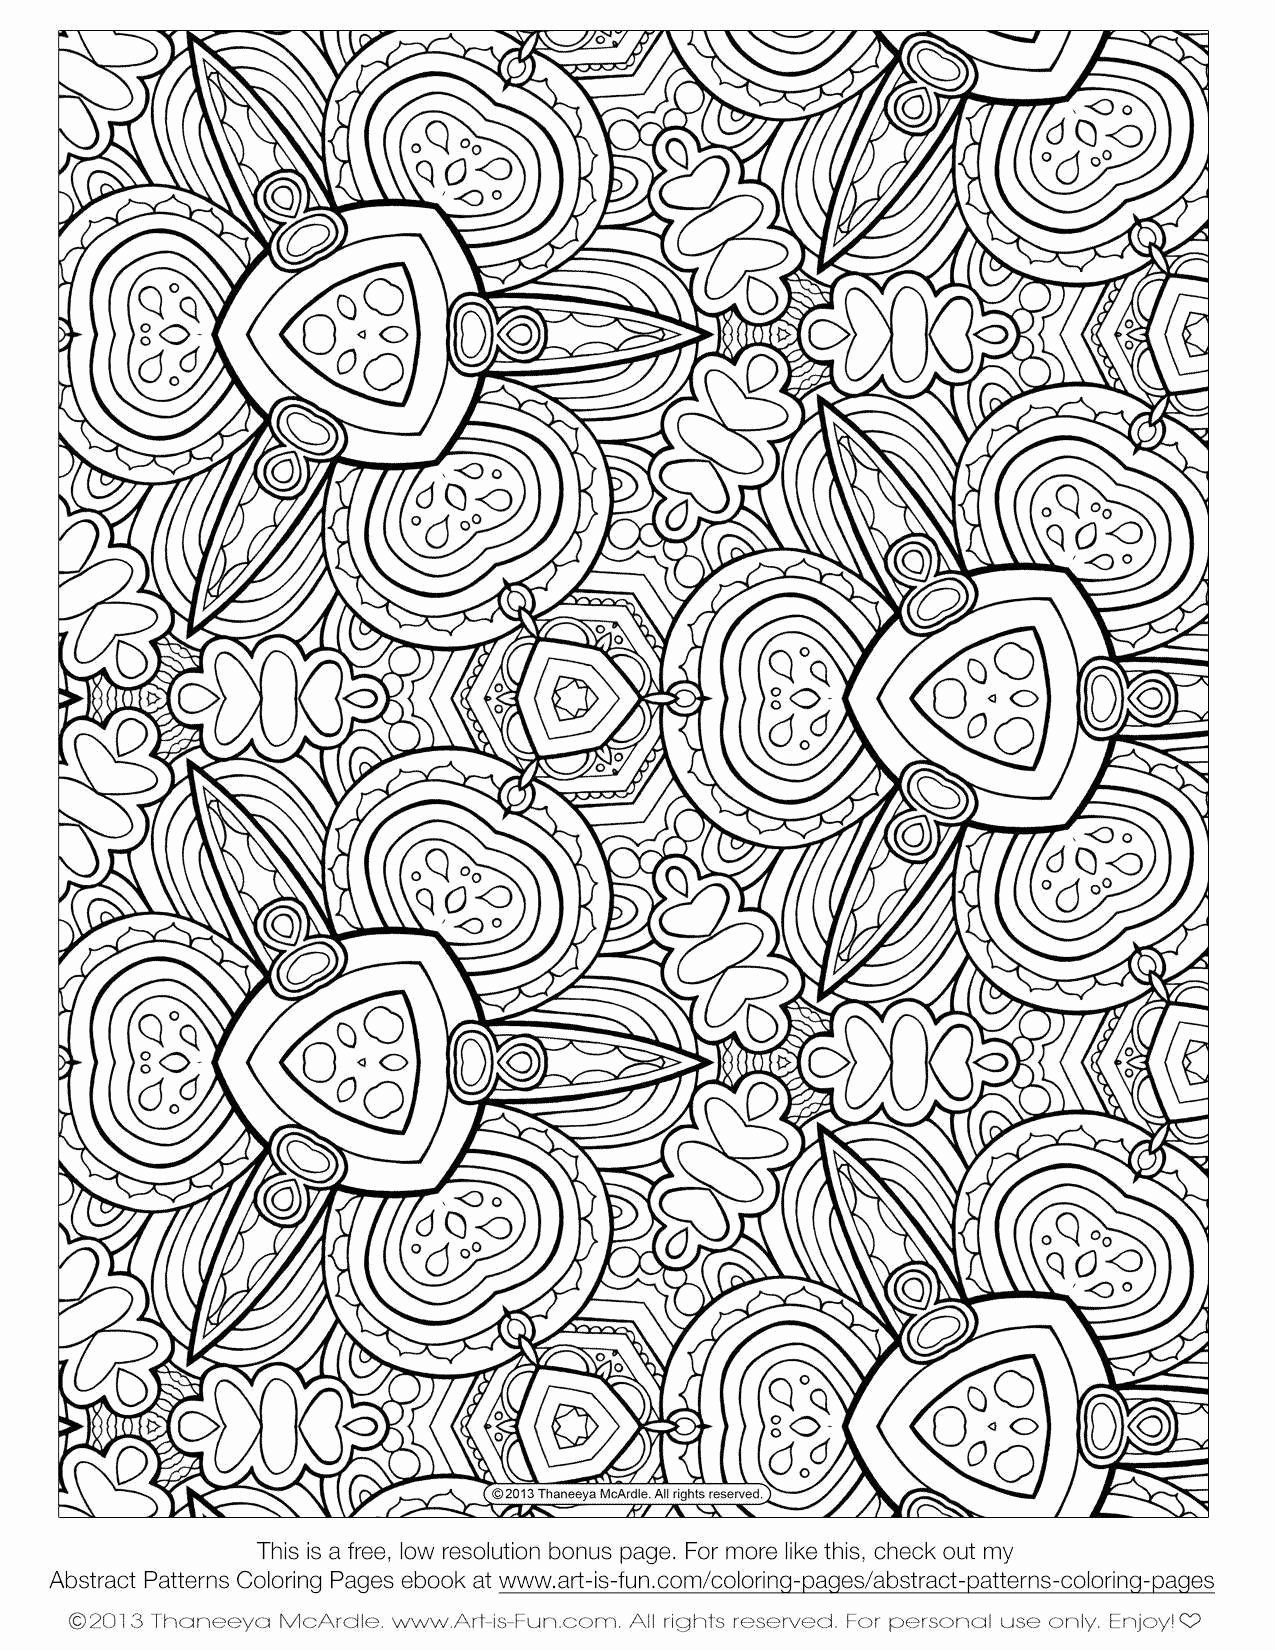 Coloring By Number For Everyone Unique Crayon Coloring Pages In 2020 Abstract Coloring Pages Geometric Coloring Pages Coloring Pages Nature